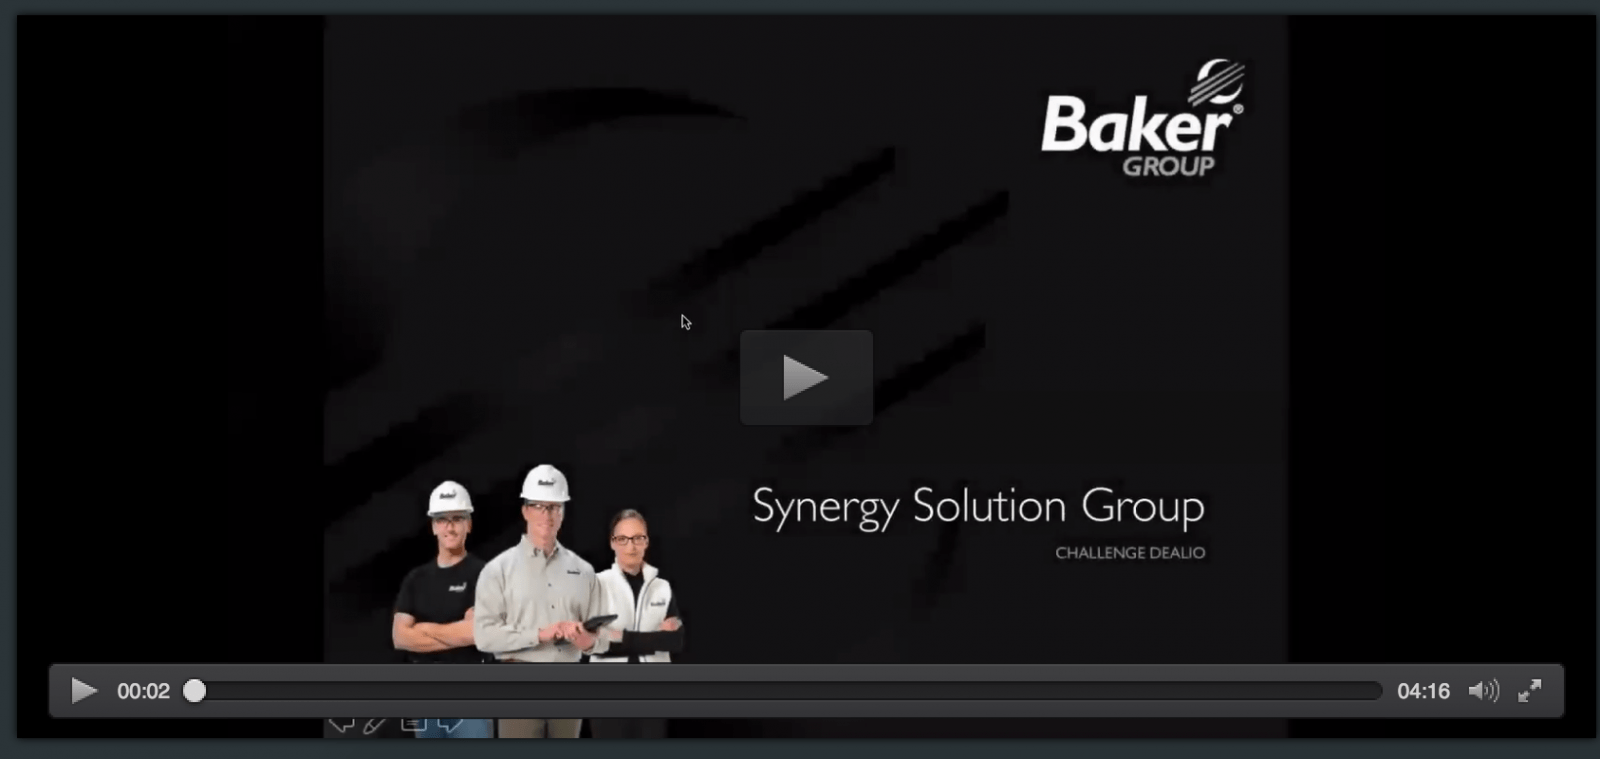 Baker Group Accepts Synergy Challenge